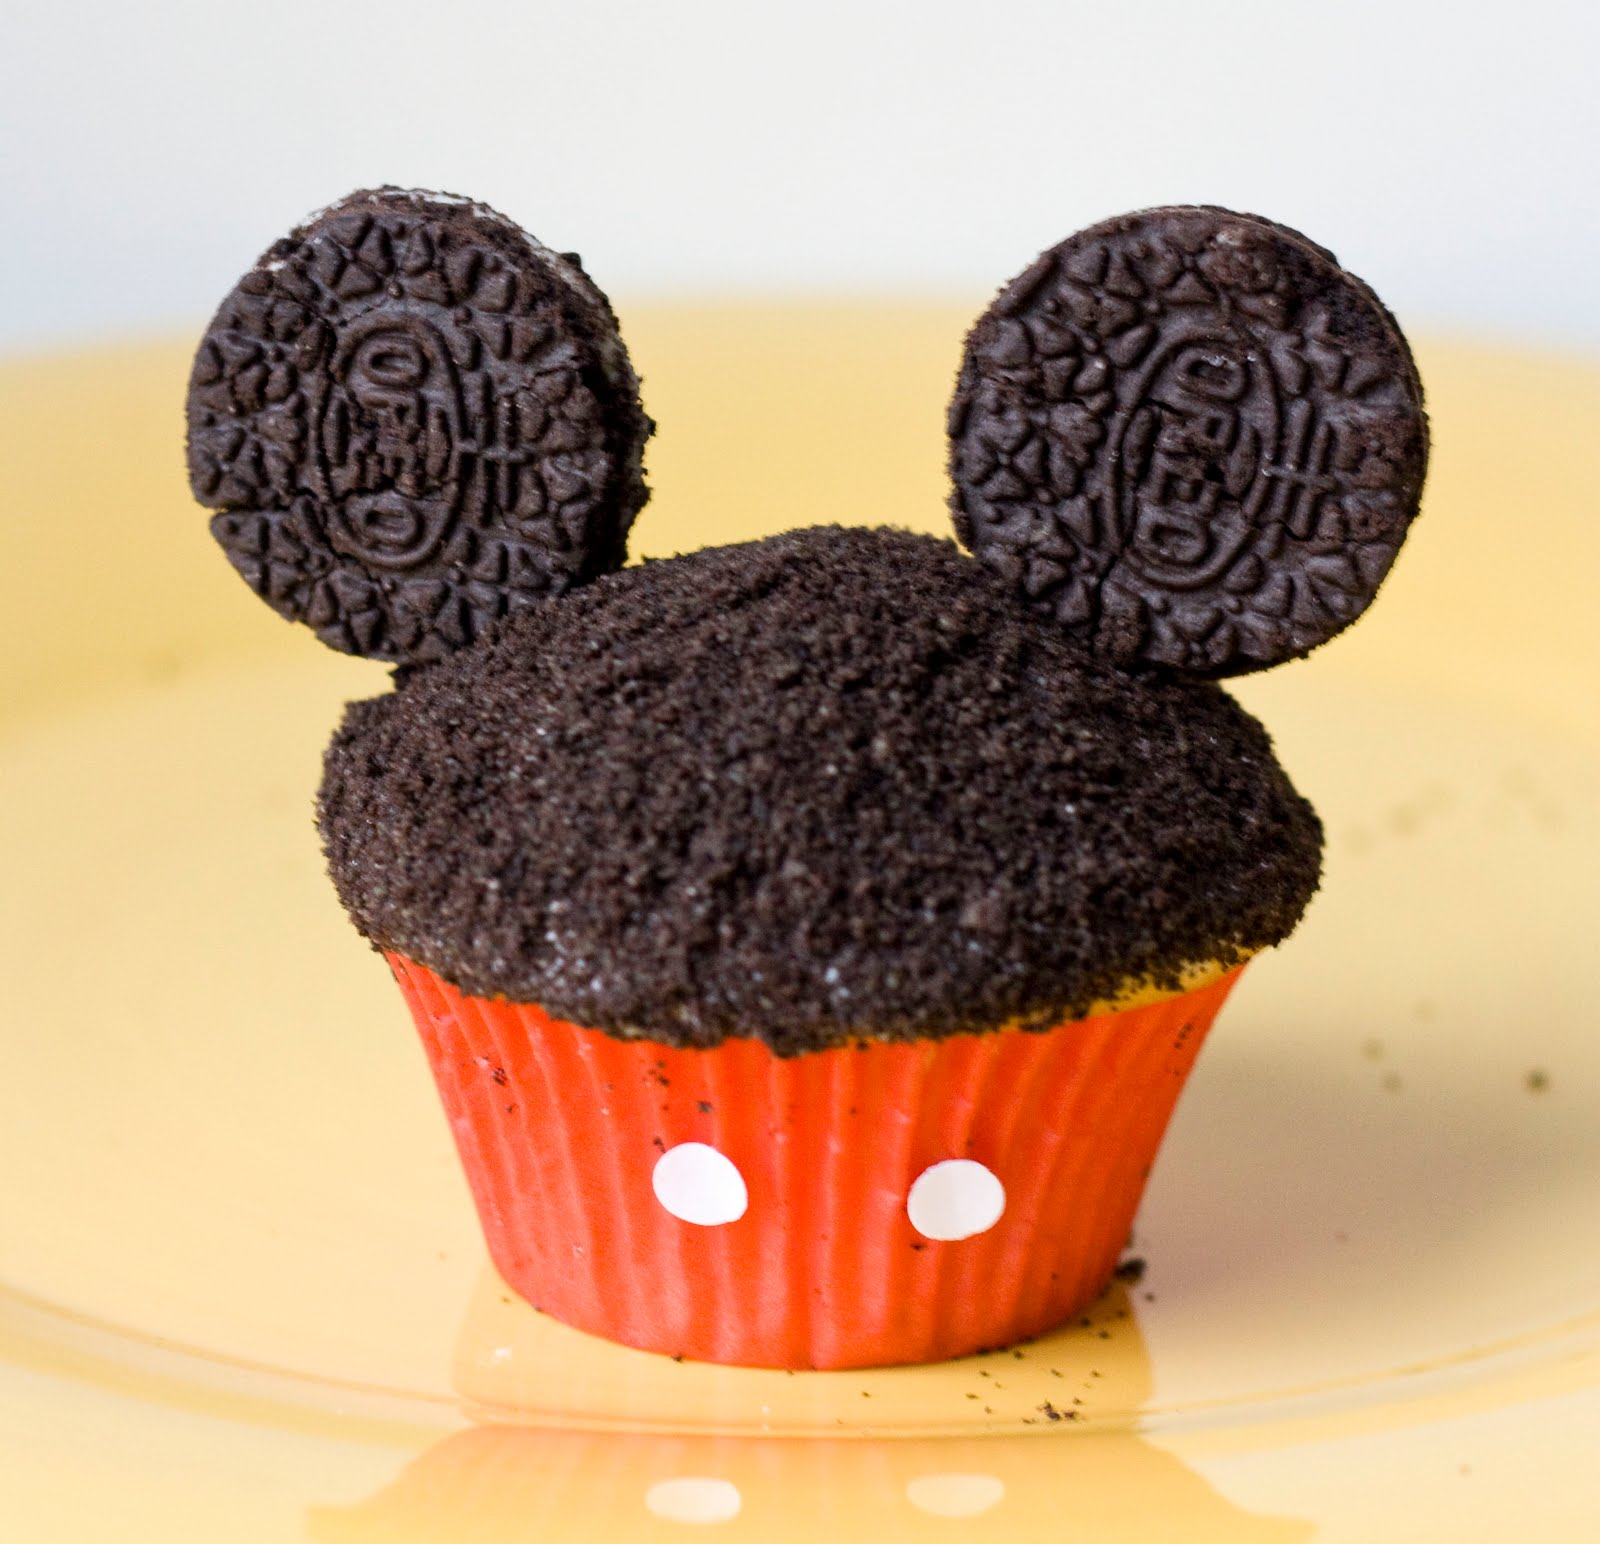 Erica's Sweet Tooth » Mickey Cupcakes